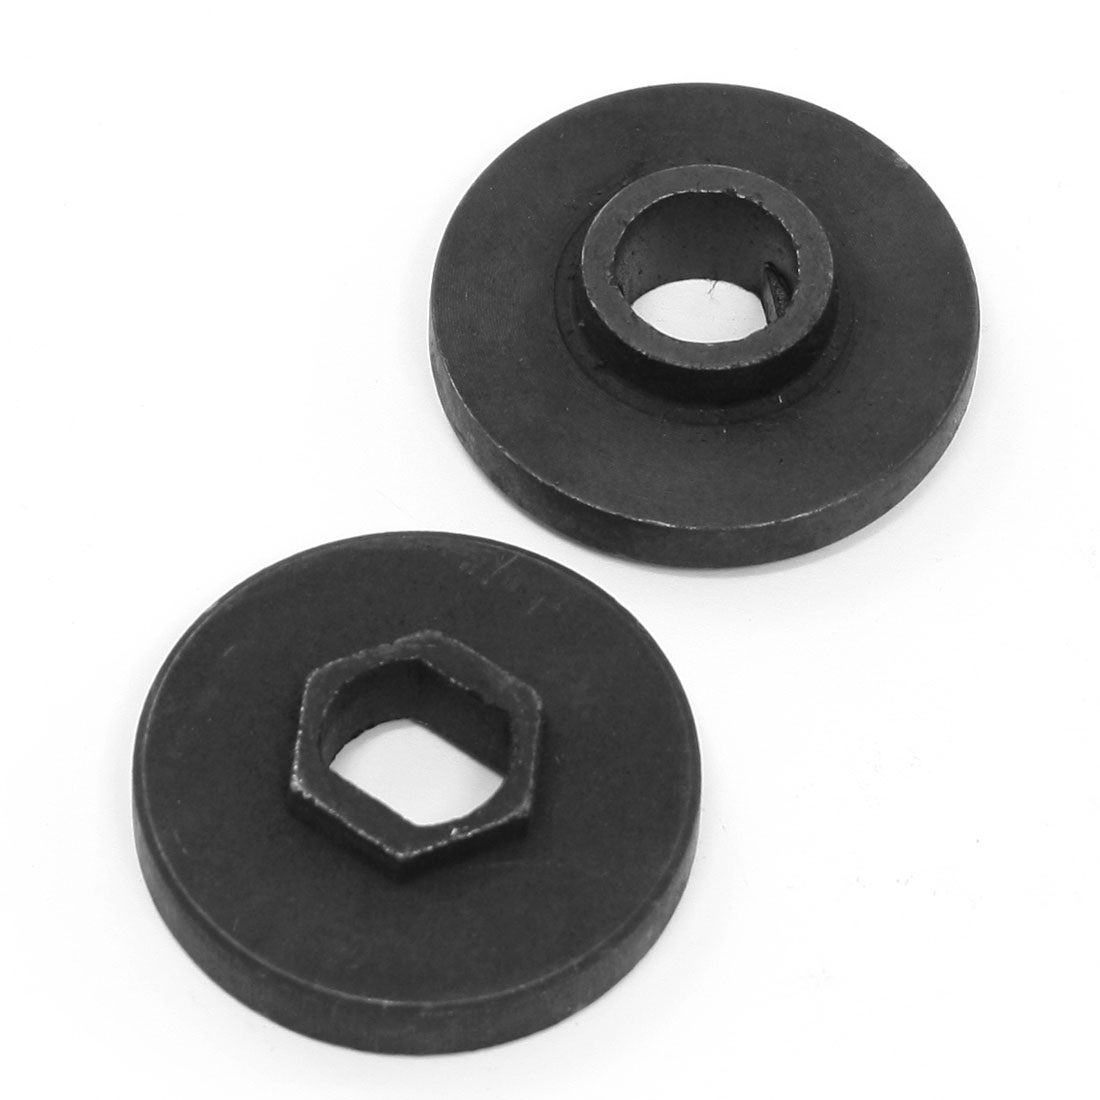 2 Pcs Repairing Part Inner Outer Flange Black 46 x 13mm 46 x 10mm